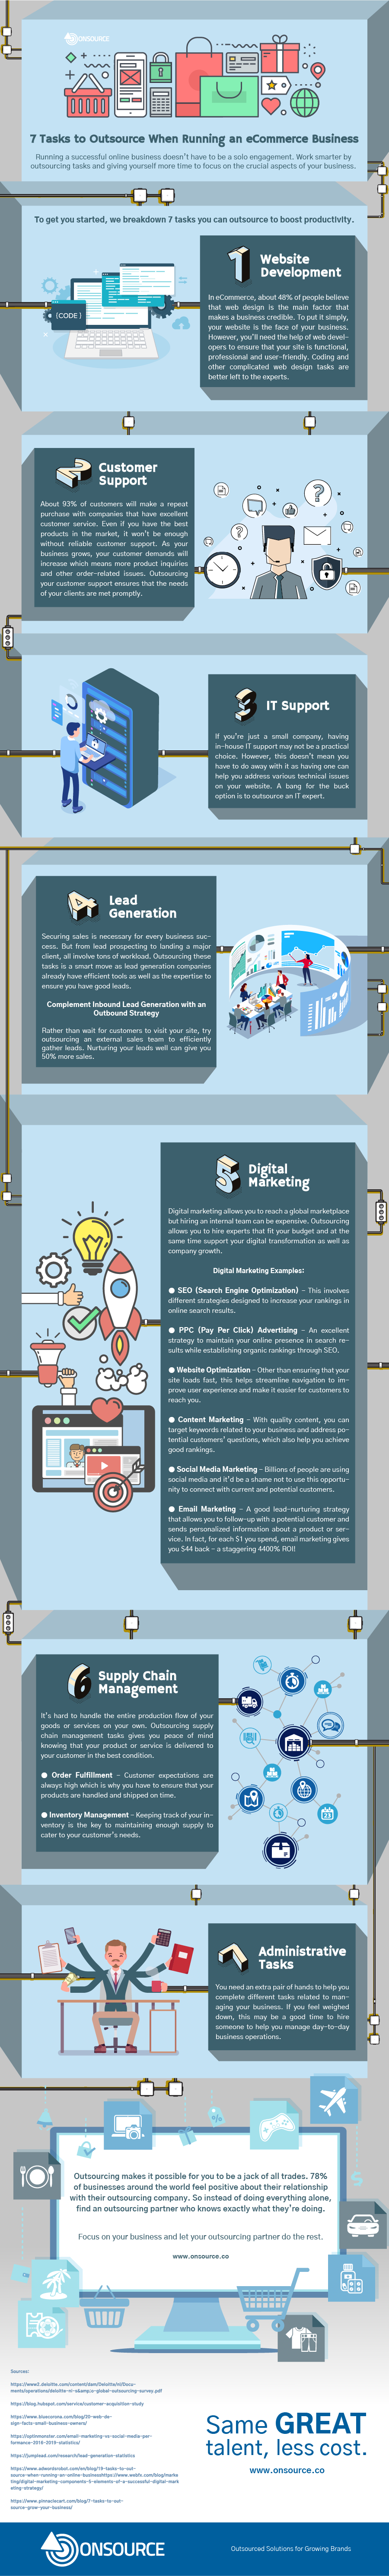 7 Tasks to Outsource When Running an e-Commerce Business #infographic